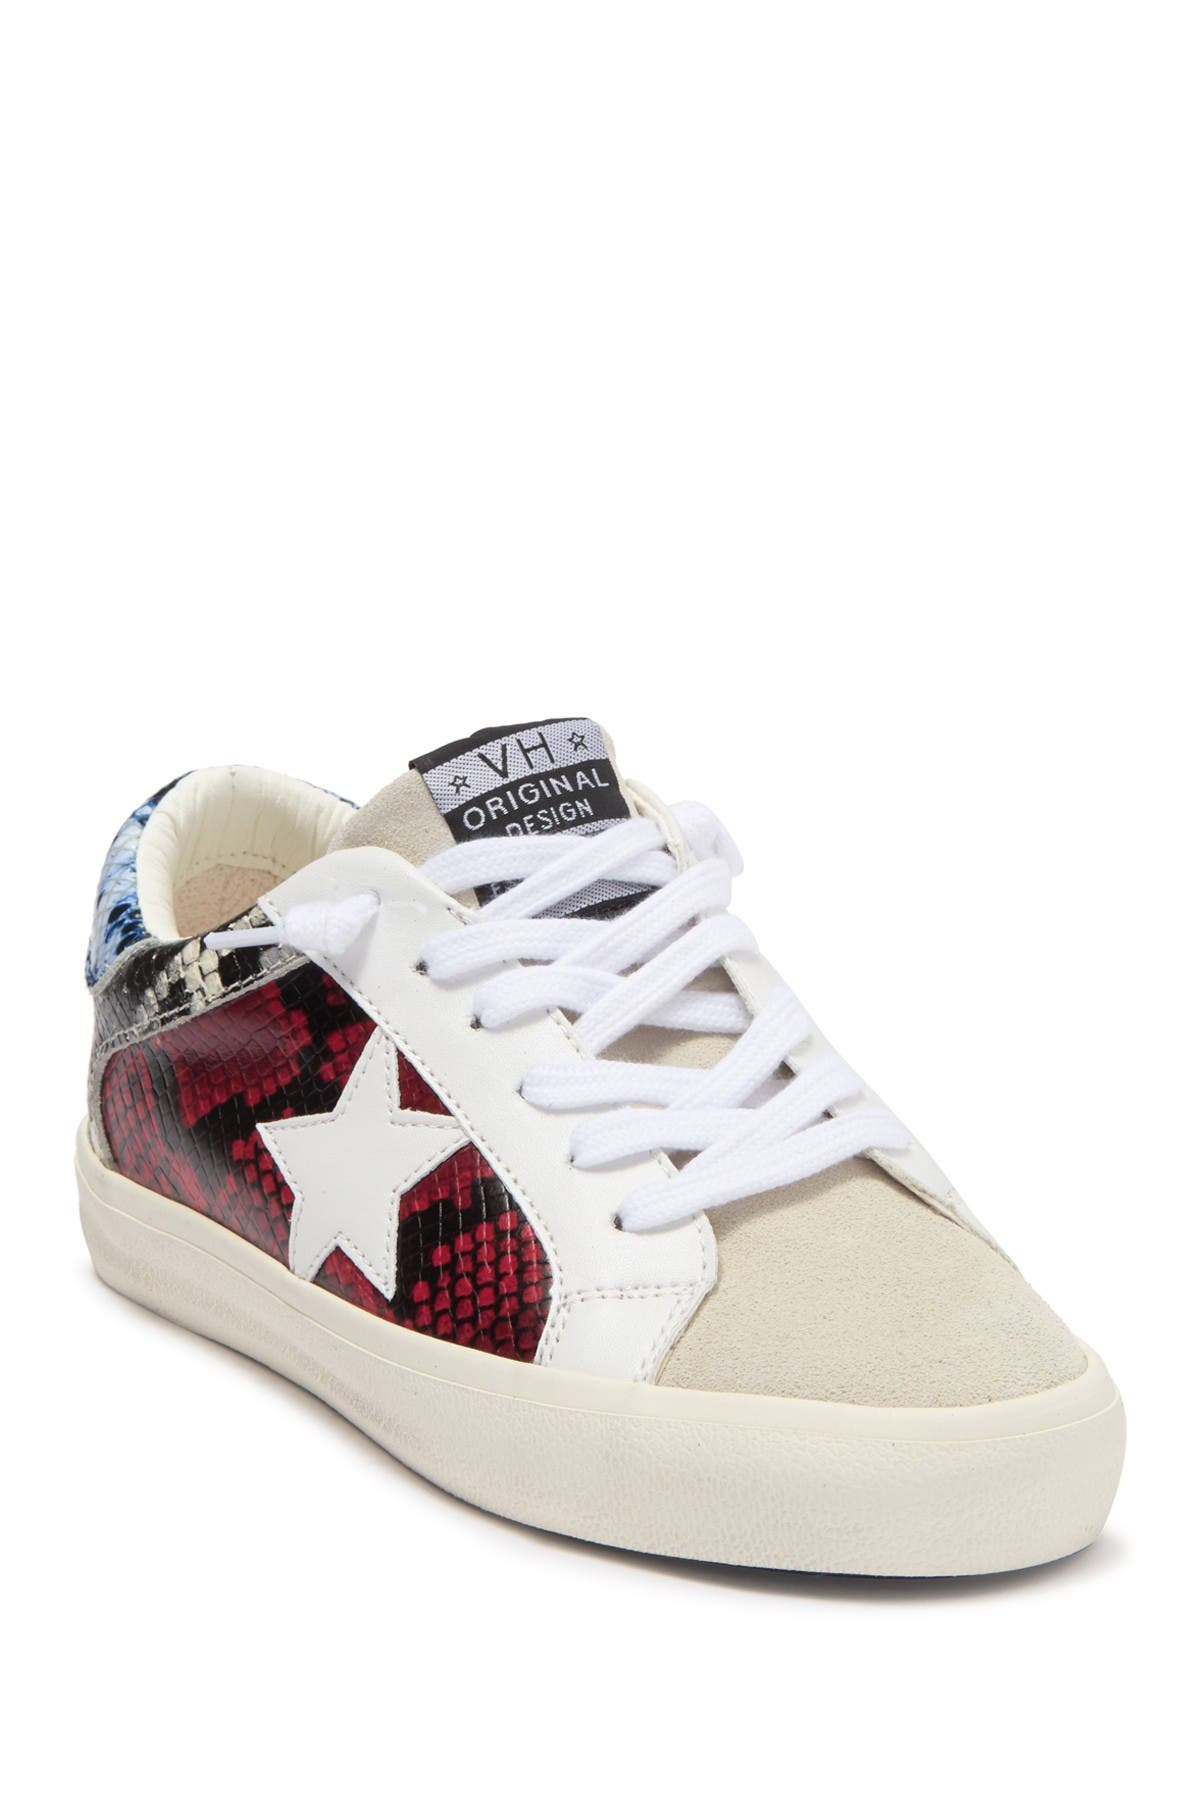 Image of Vintage Havana Second Snakeskin Embossed Patch Sneaker